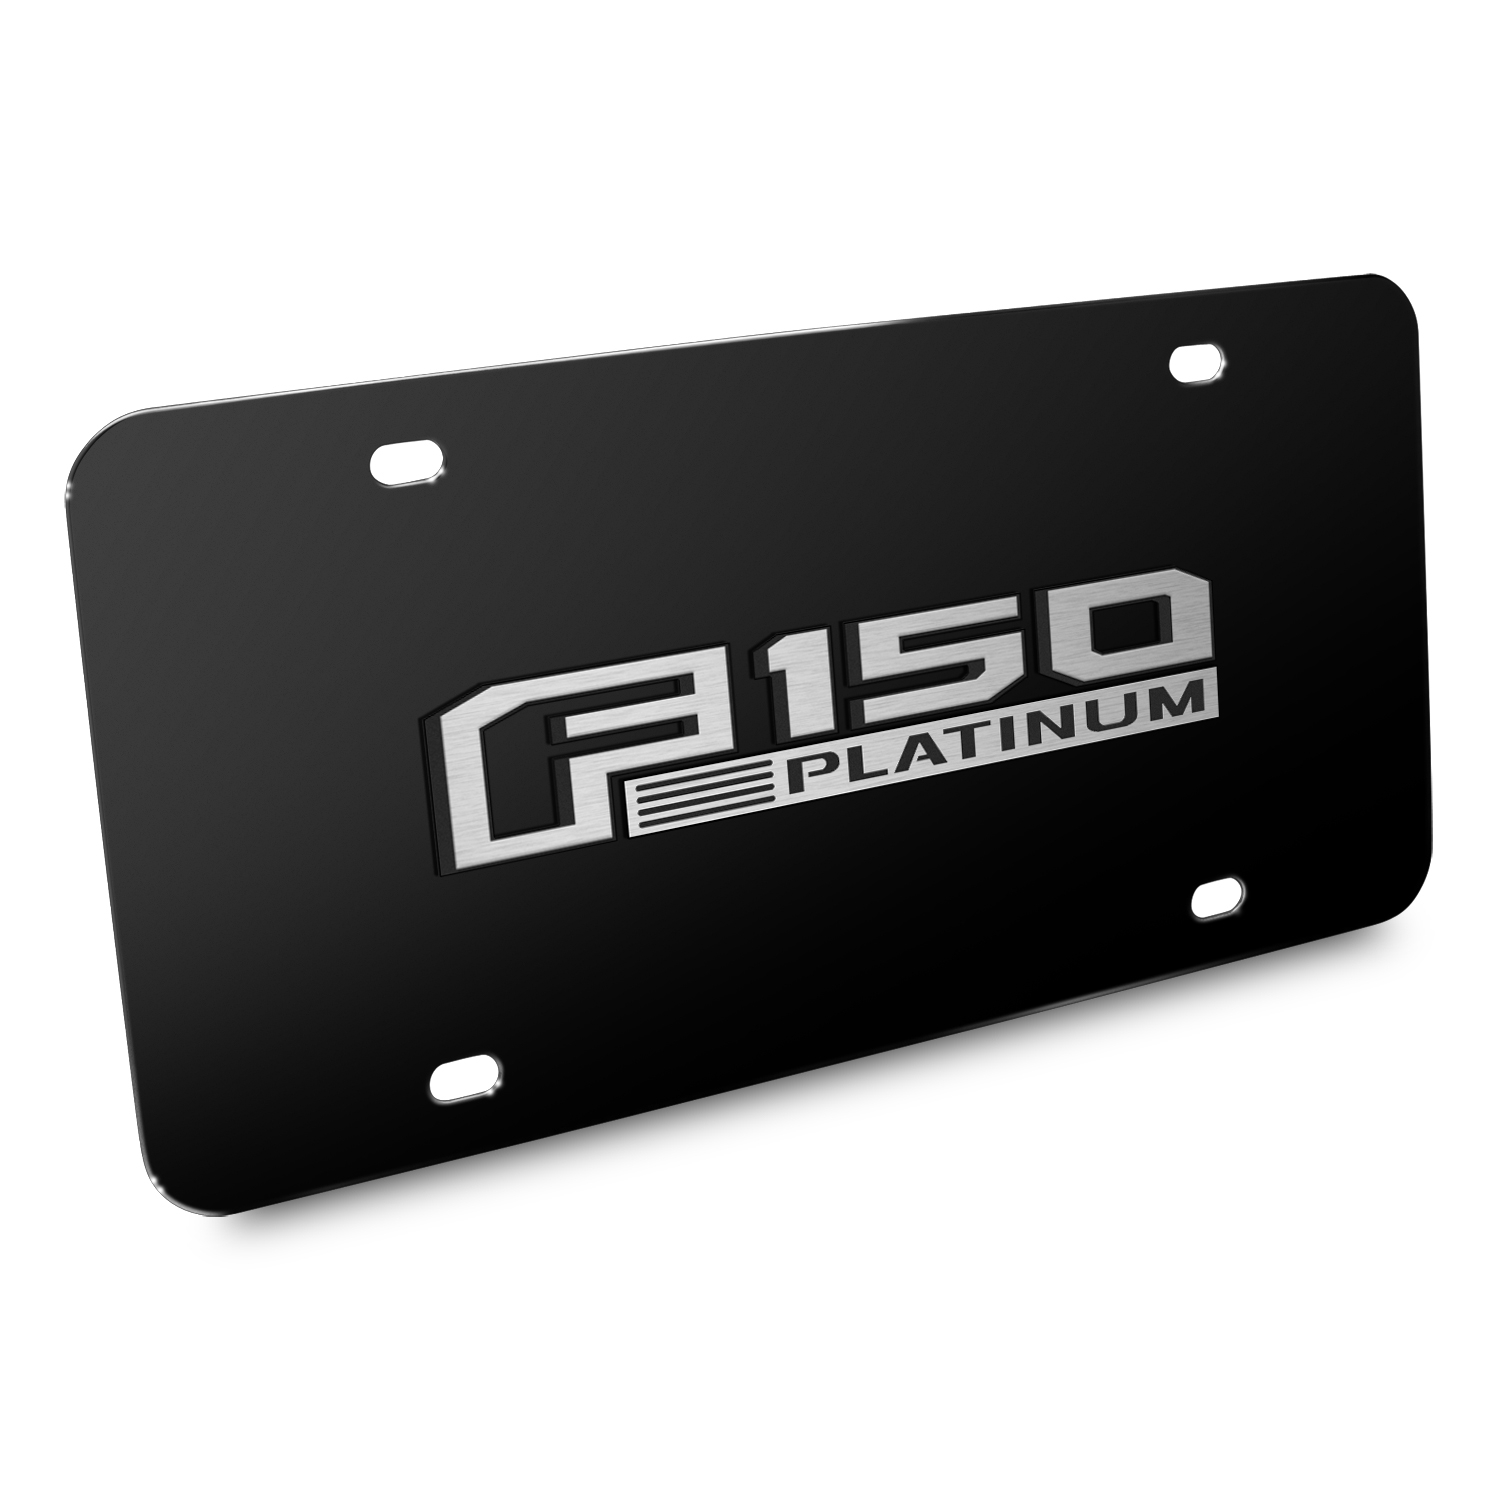 Ford 150 Platinum 3D Black Stainless Steel License Plate